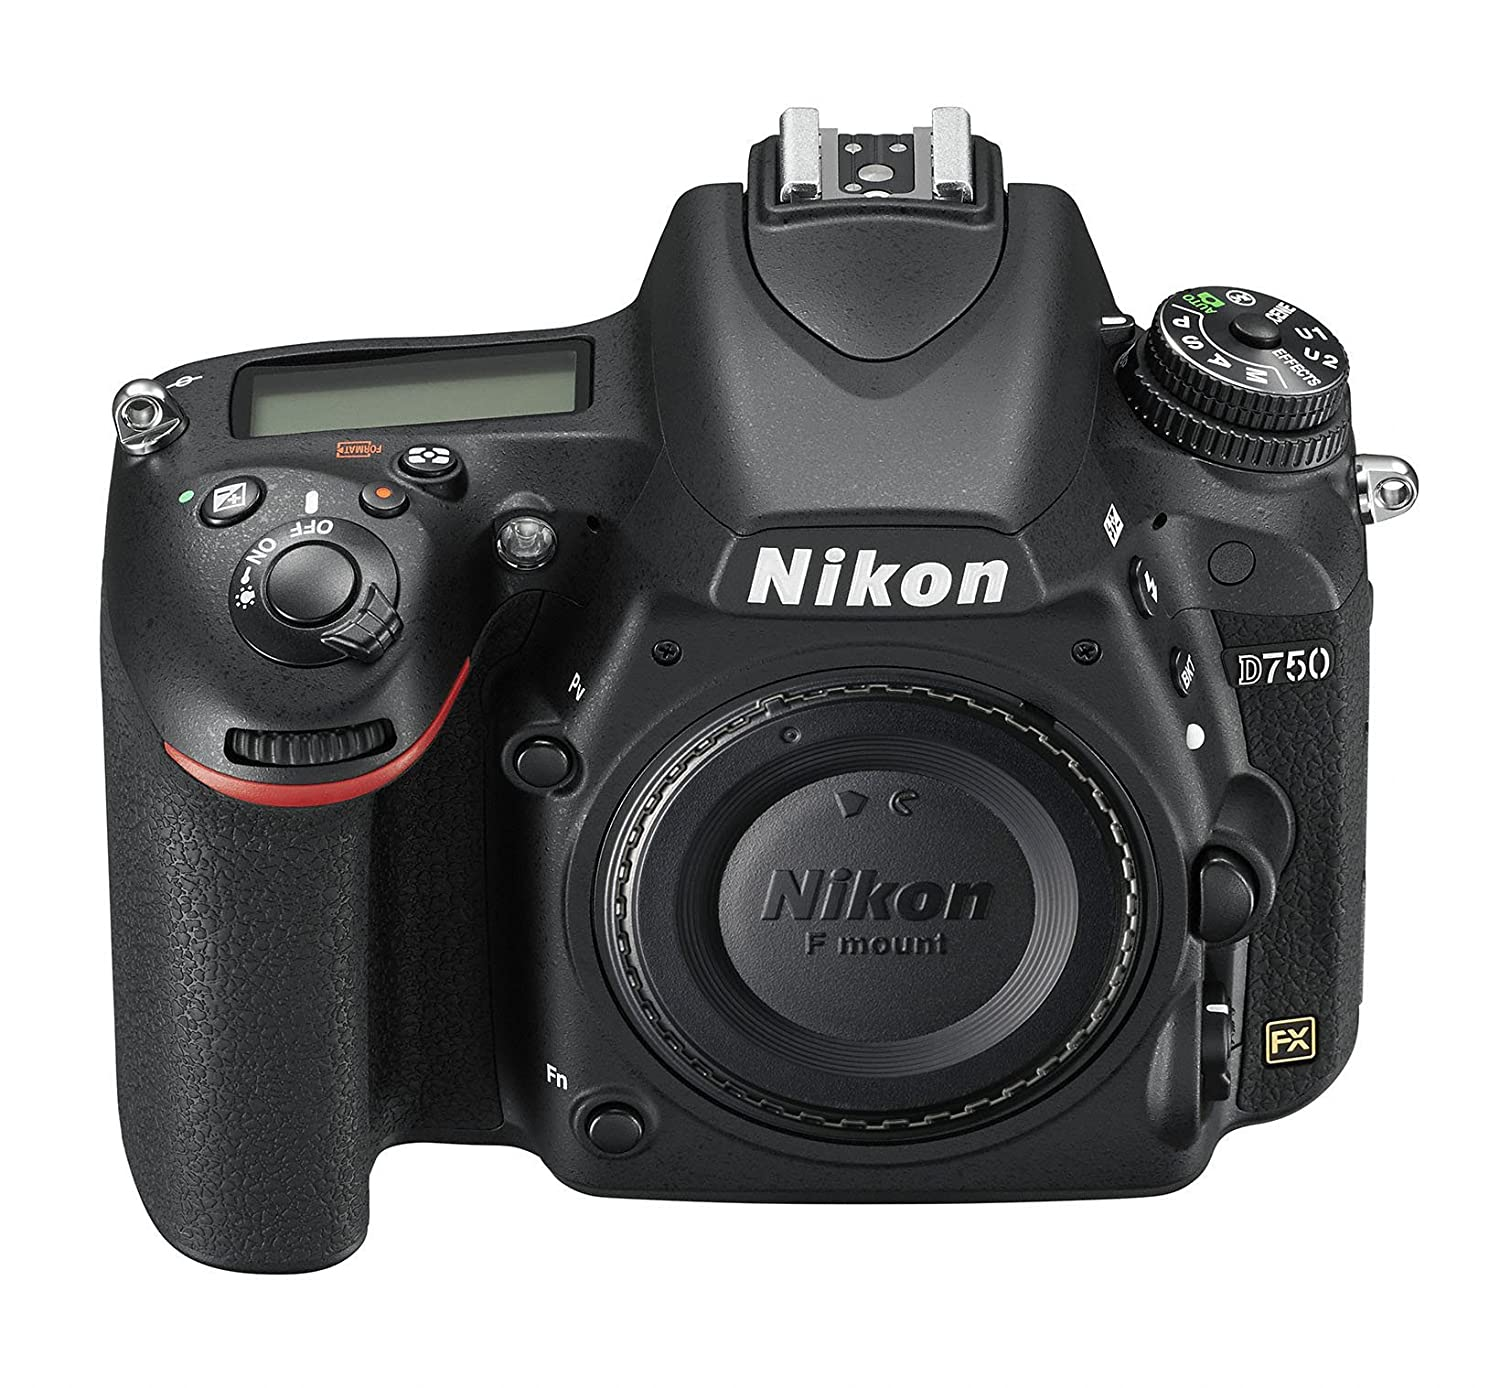 Nikon D750 FX-format Digital SLR Camera Body